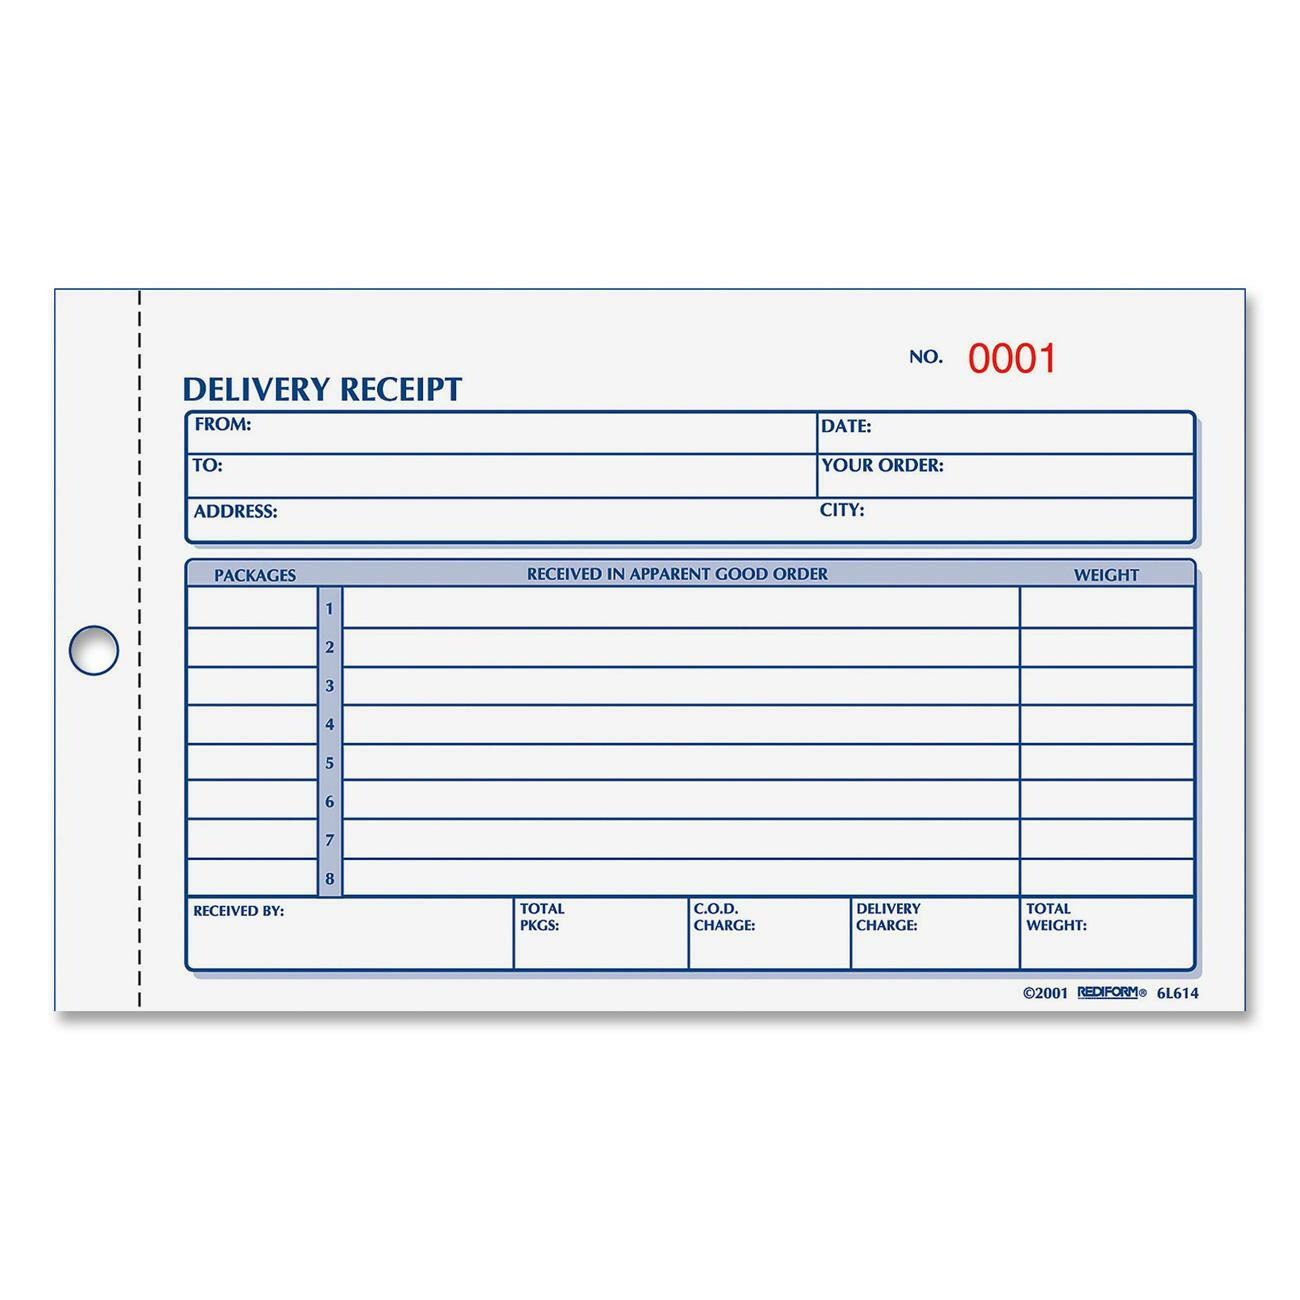 Blank Sales Invoice Alpha Business Essentials  Browse Items Smoothie Receipt Word with Sales Receipt Maker Excel Zoom In Security Deposit Refund Receipt Excel